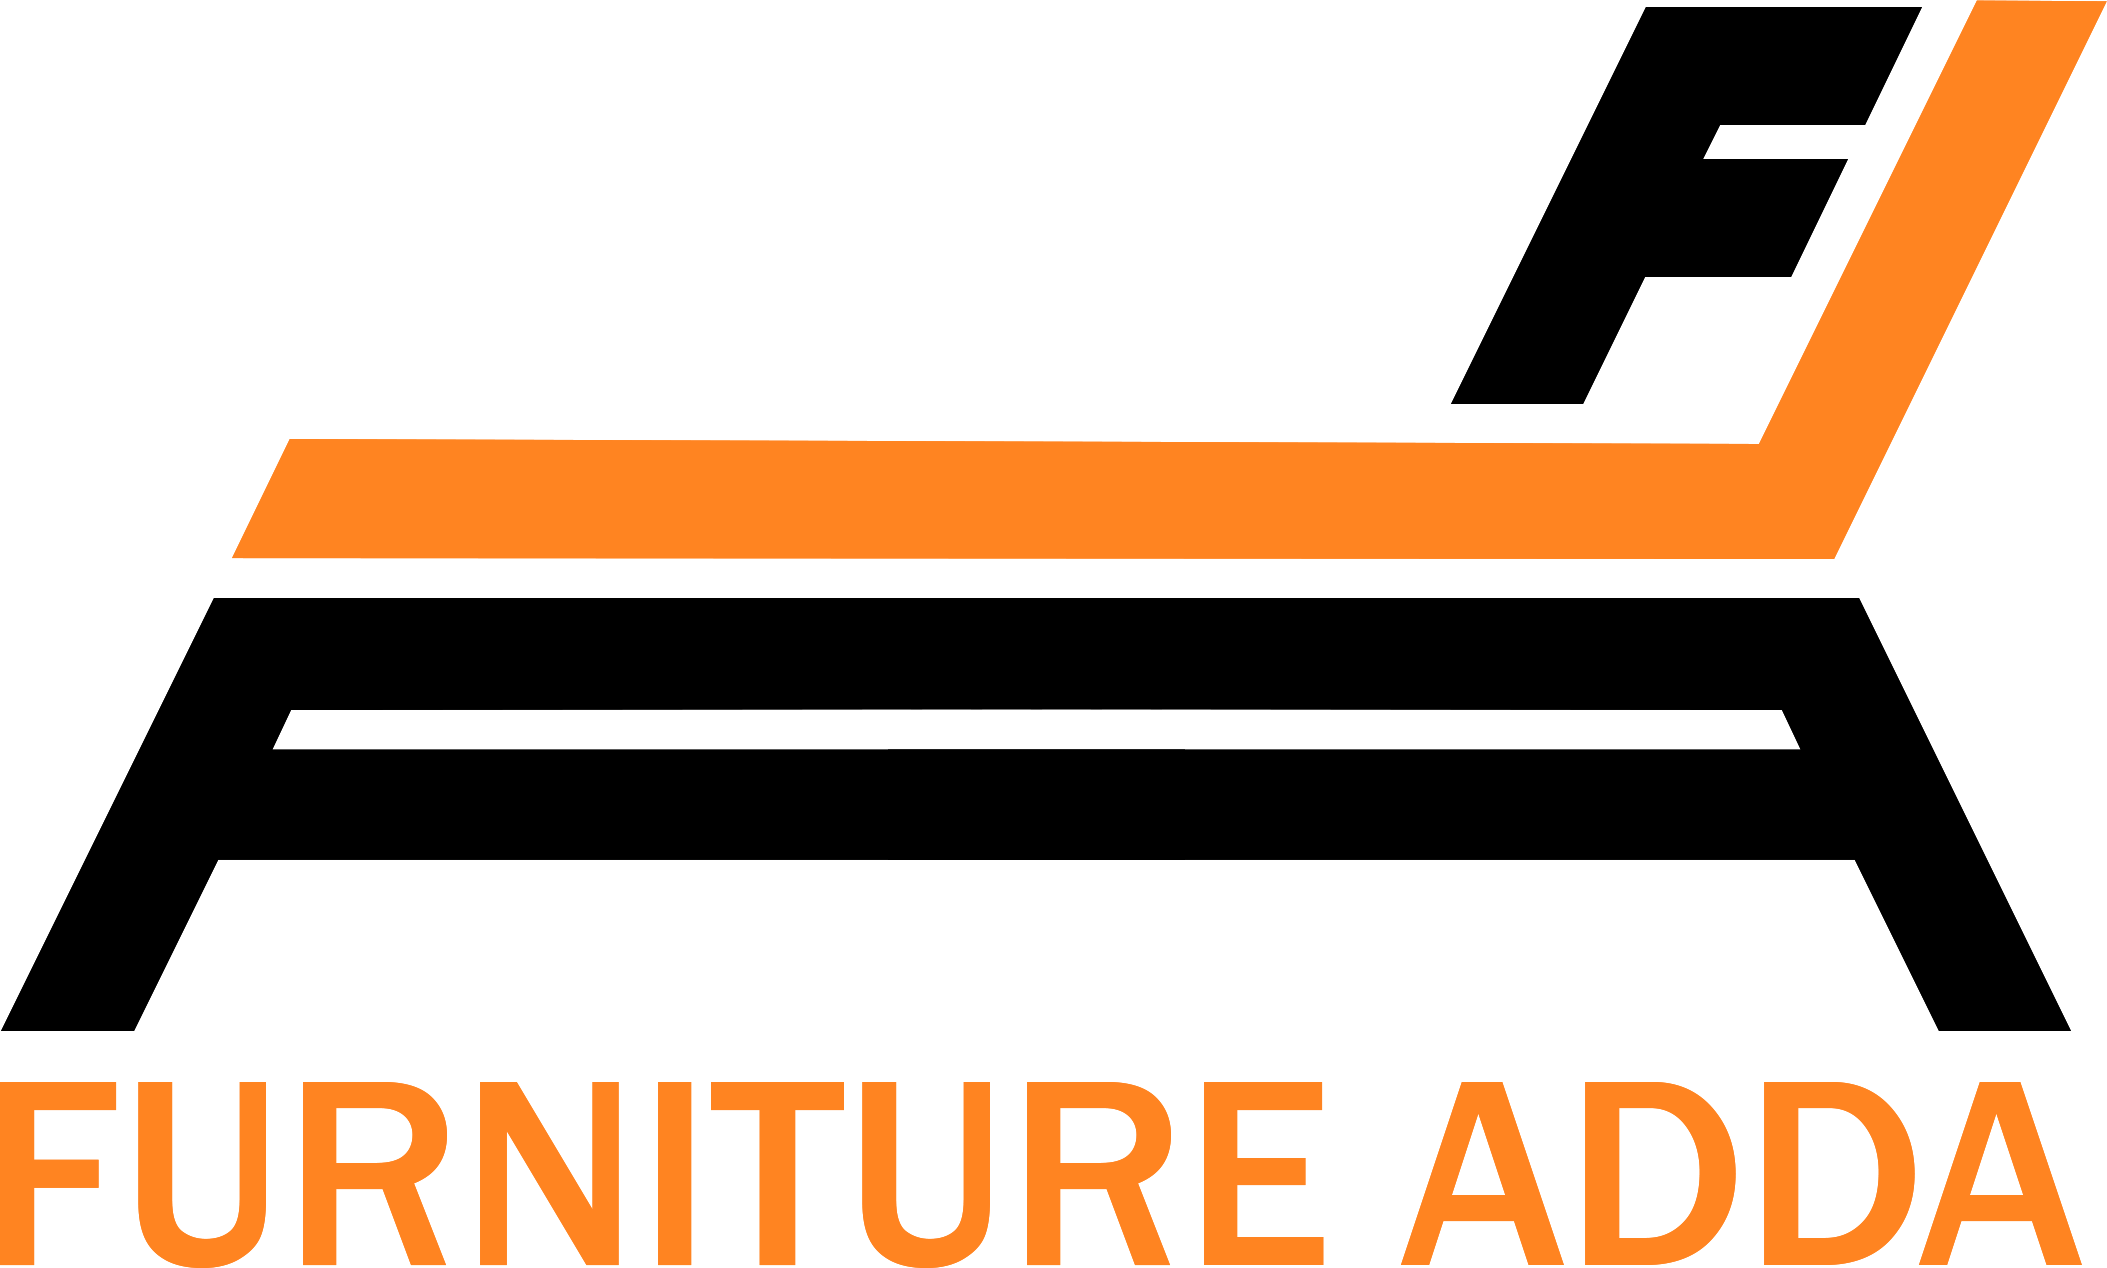 FurnitureAdda's Profile - SideProjectors   Marketplace to buy and sell side projects.